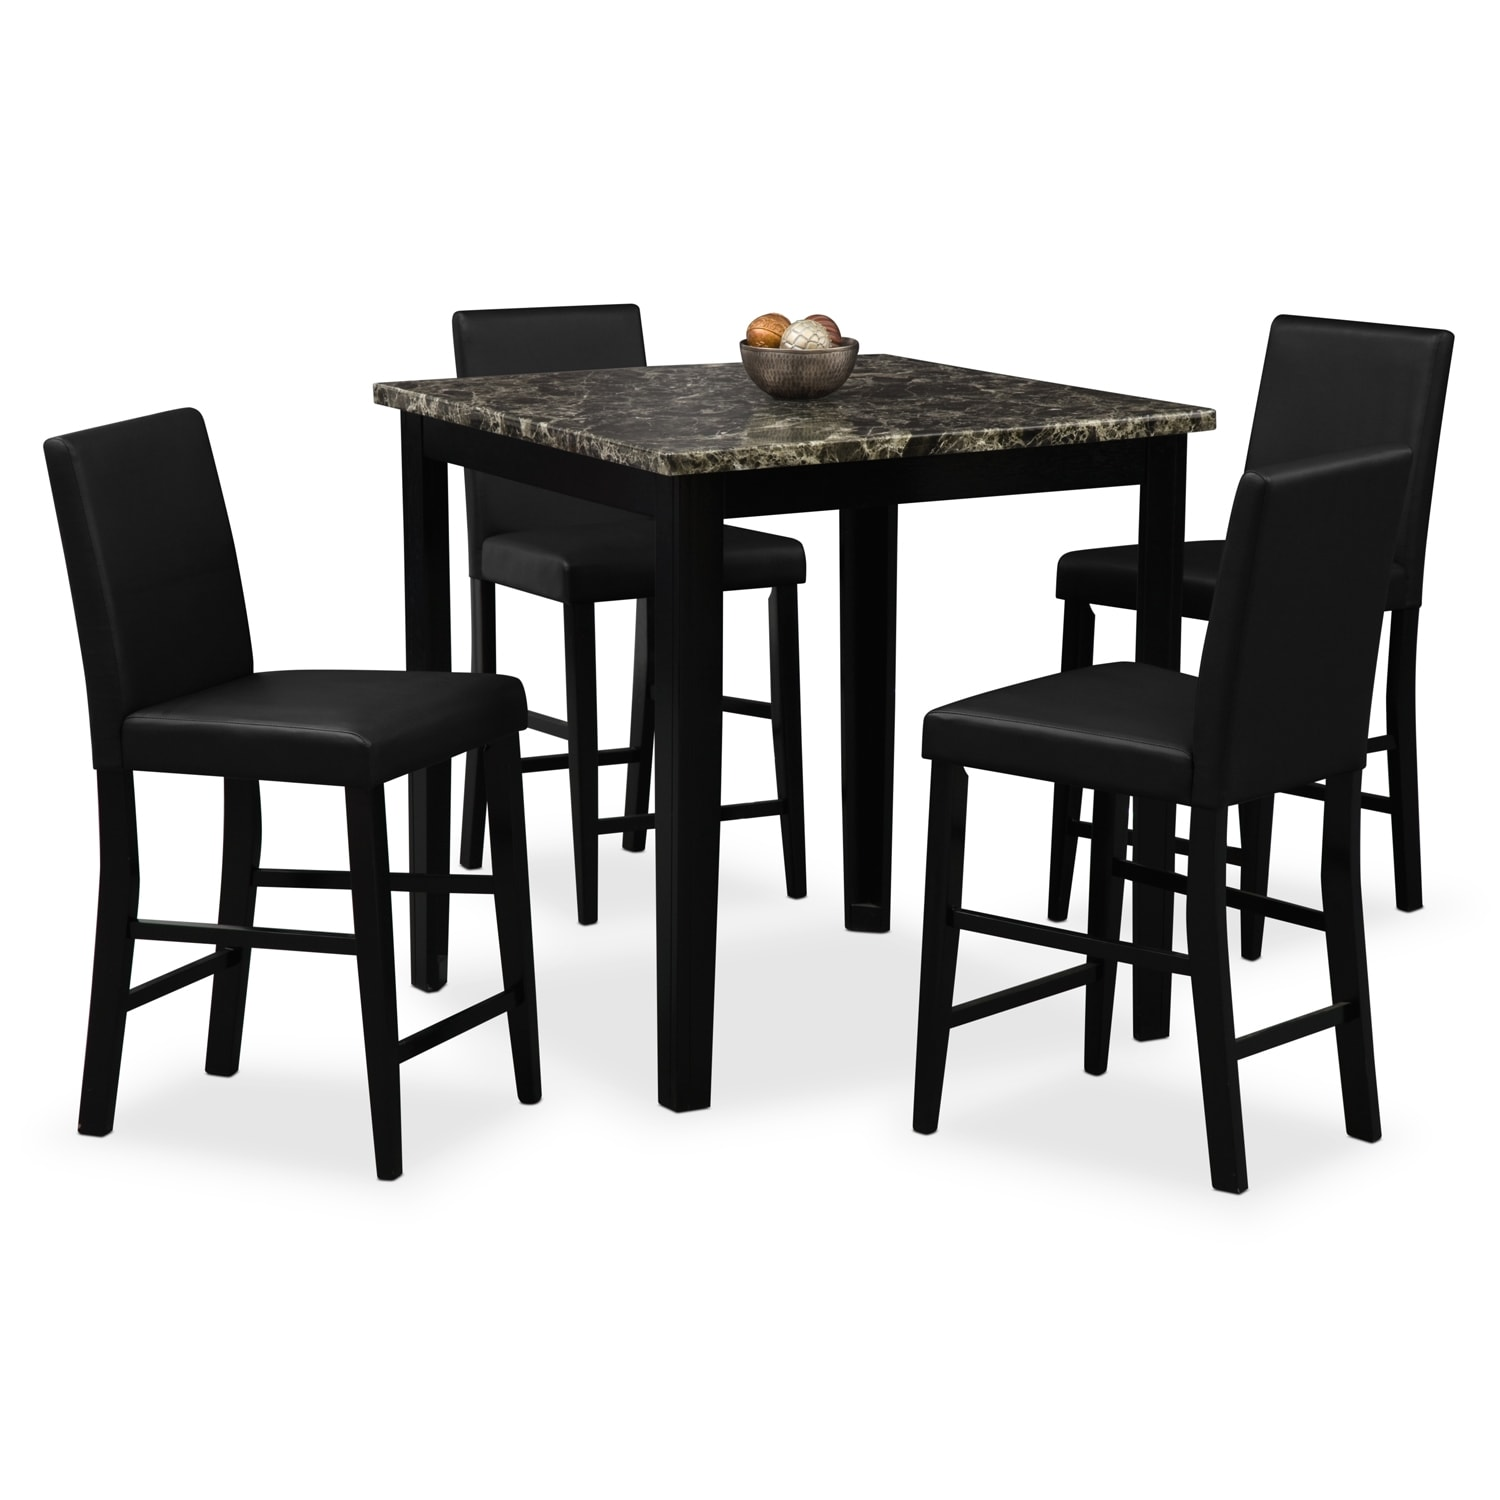 Shadow counter height table and 4 chairs black for Best dining room table height